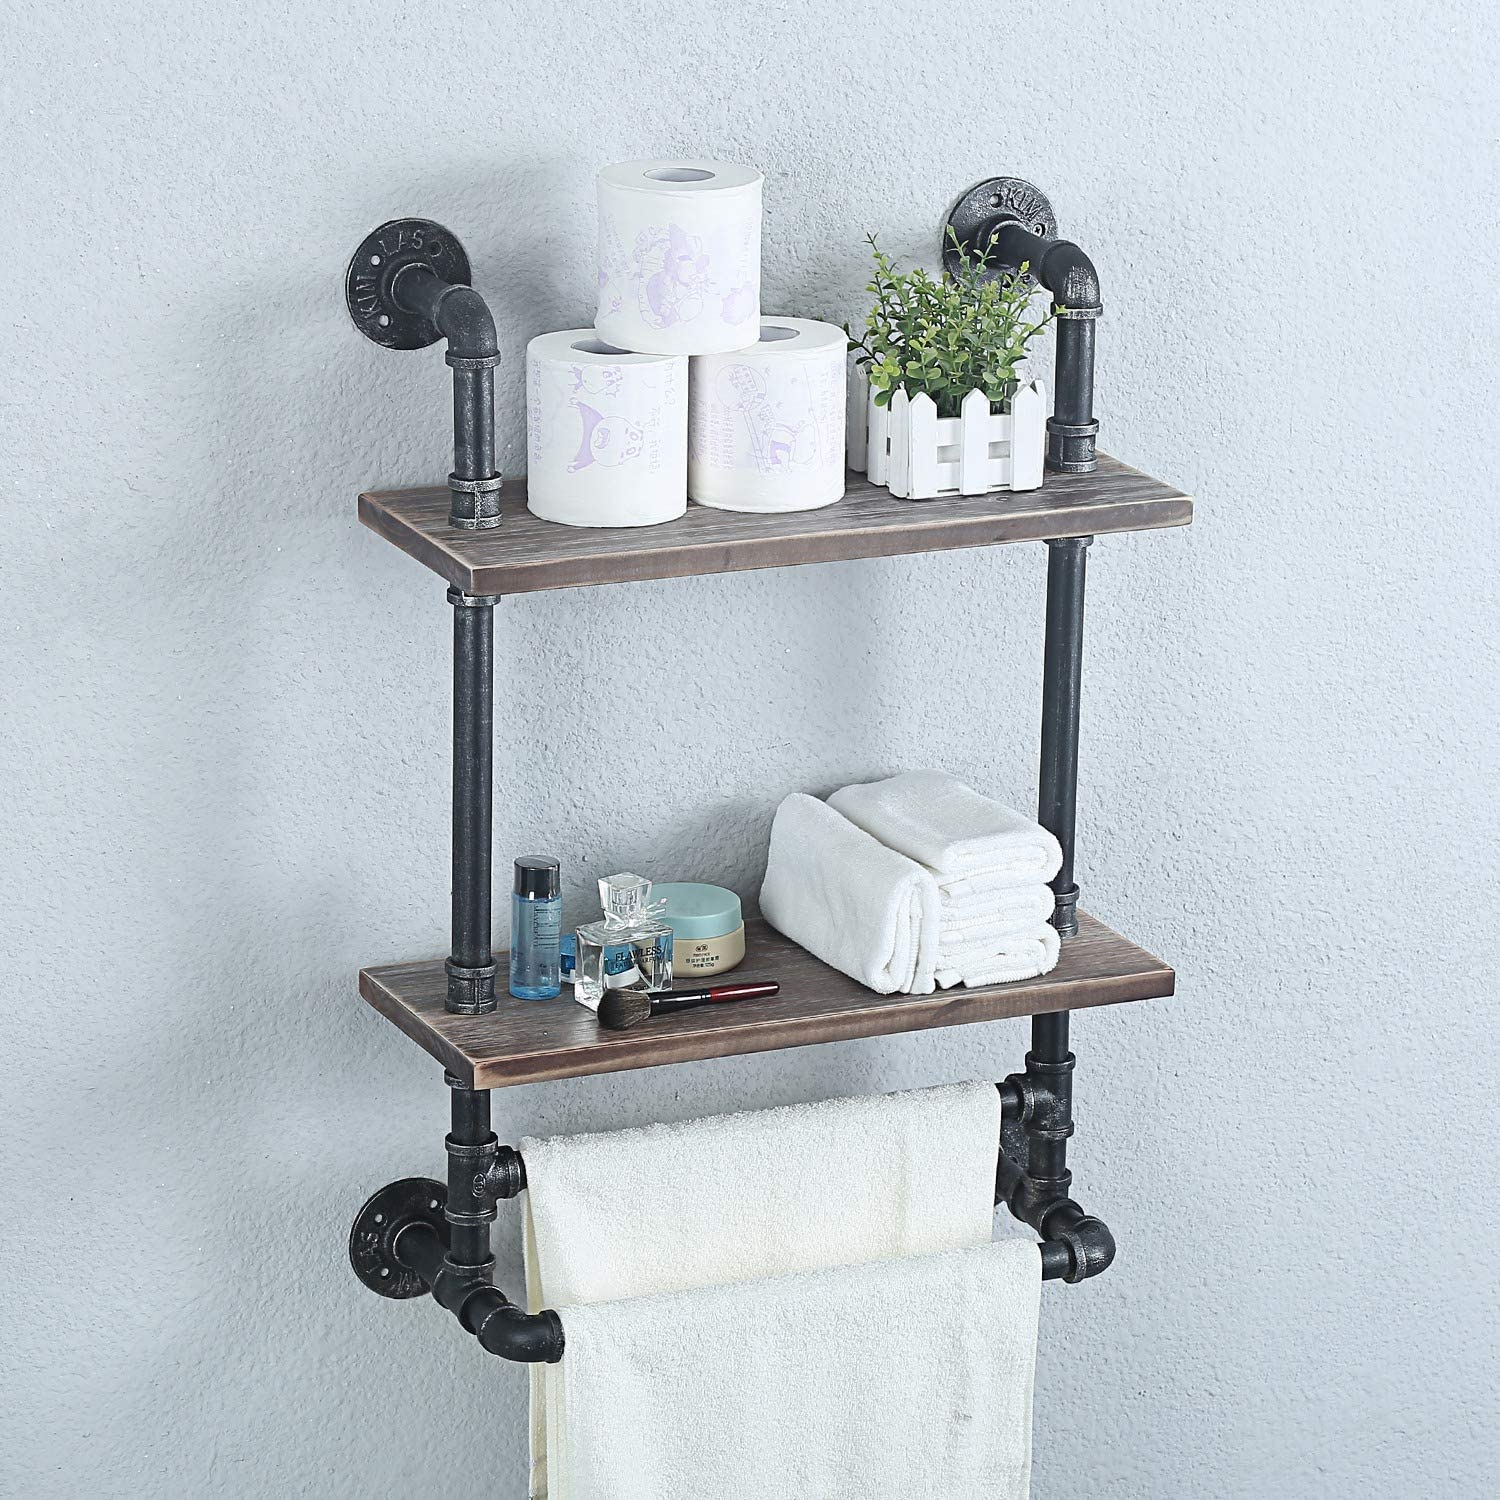 Weven Industrial Pipe Bathroom Shelves Wall Mounted,2 Tier Metal Floating Shelves Towel Holder,Towel Rack With 2 Towel Bar Wall Shelf Over Toilet,19.7in Rustic Wall Decor Farmhouse